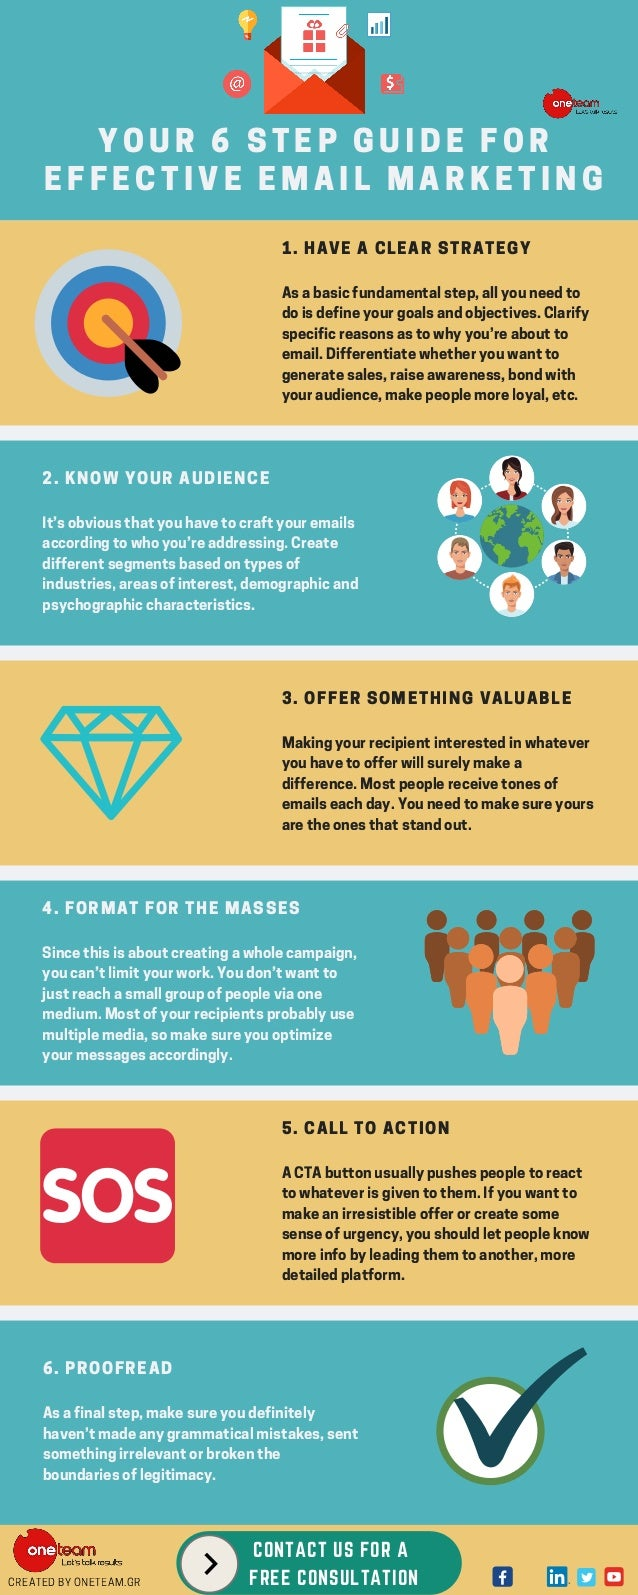 YOUR 6 STEP GUIDE FOR EFFECTIVE EMAIL MARKETING 1. HAVE A CLEAR STRATEGY Asabasicfundamentalstep,allyouneedto doisdefineyo...